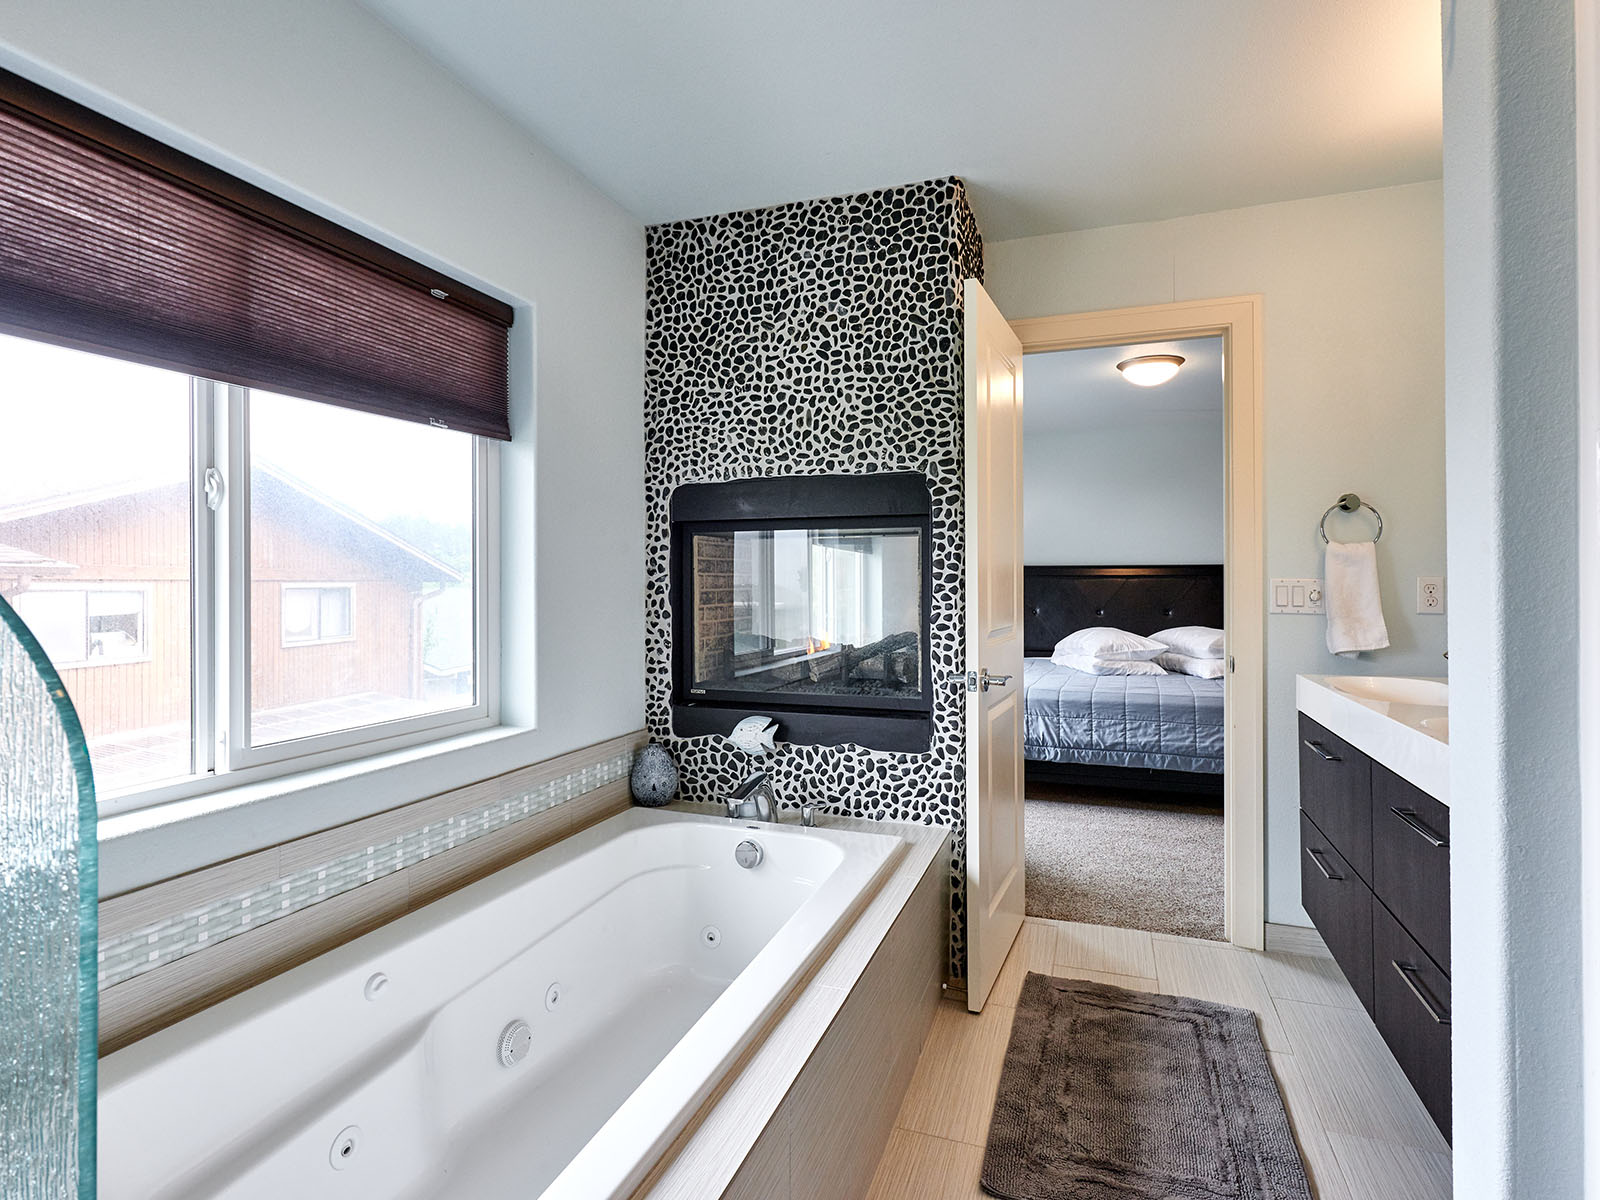 Bathtub with fireplace above